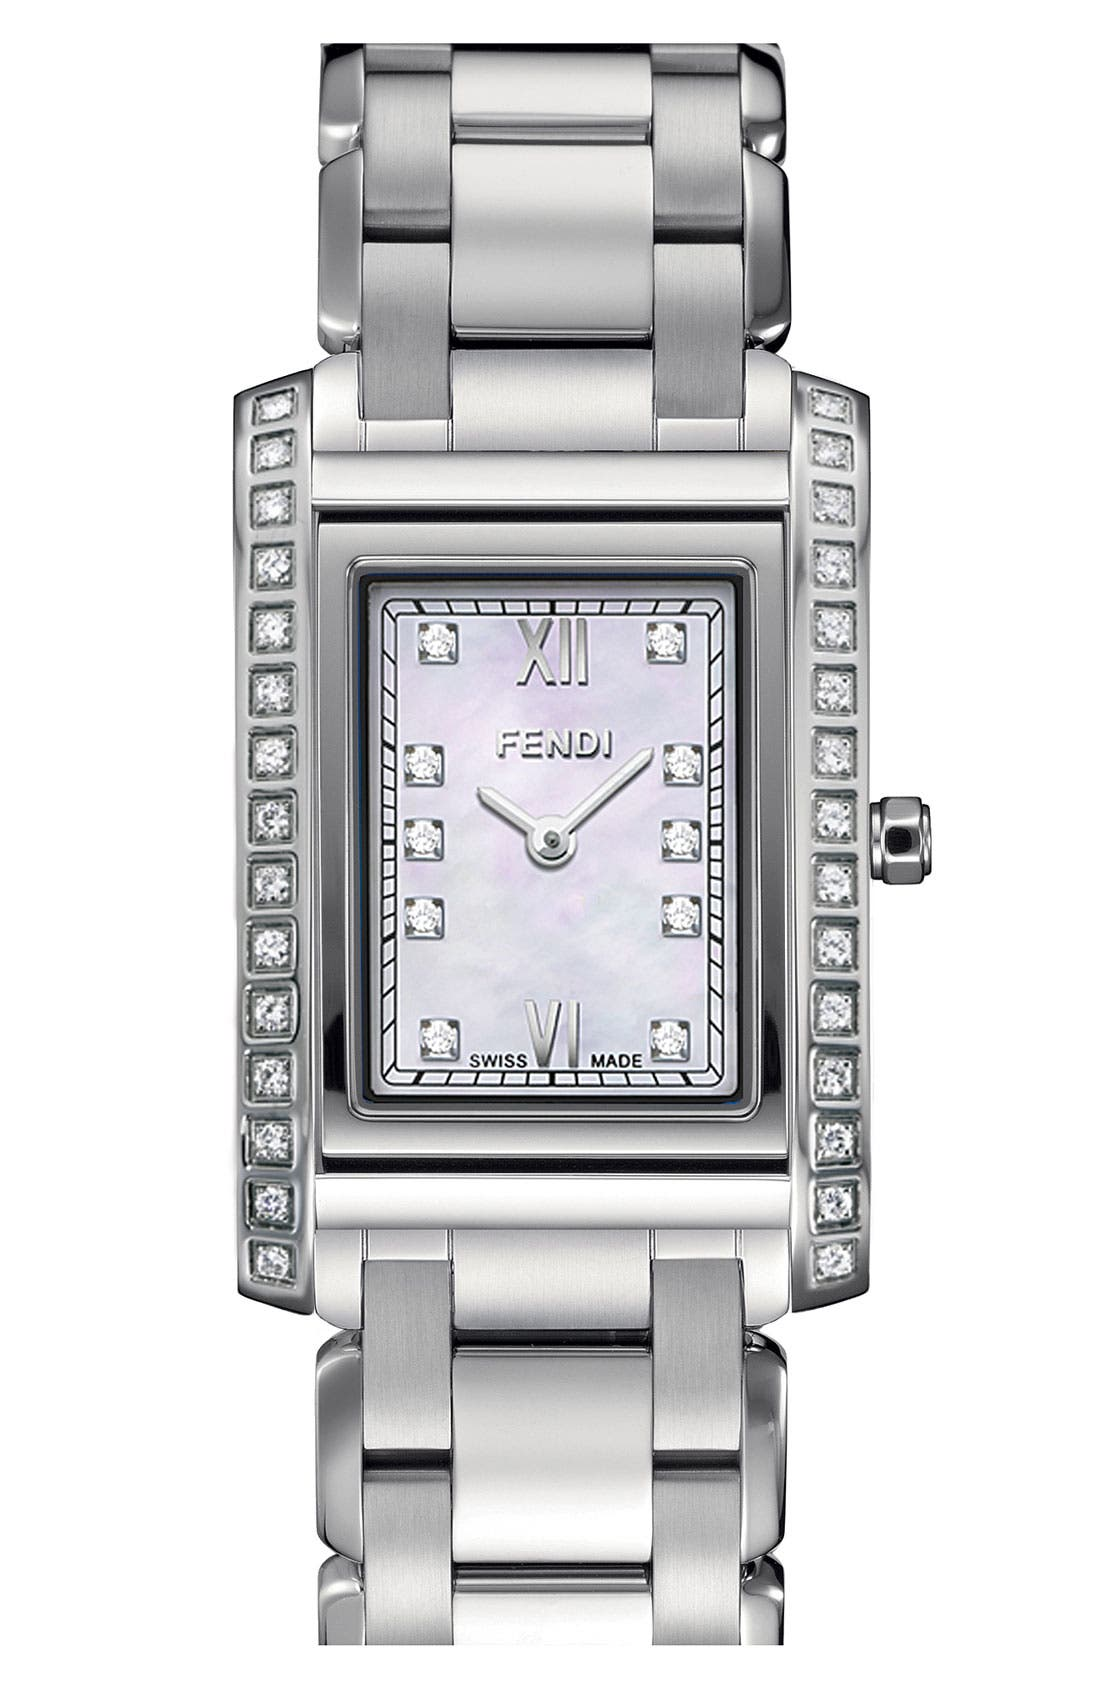 Main Image - Fendi 'Loop - Medium' Diamond Bracelet Watch, 27mm x 40mm